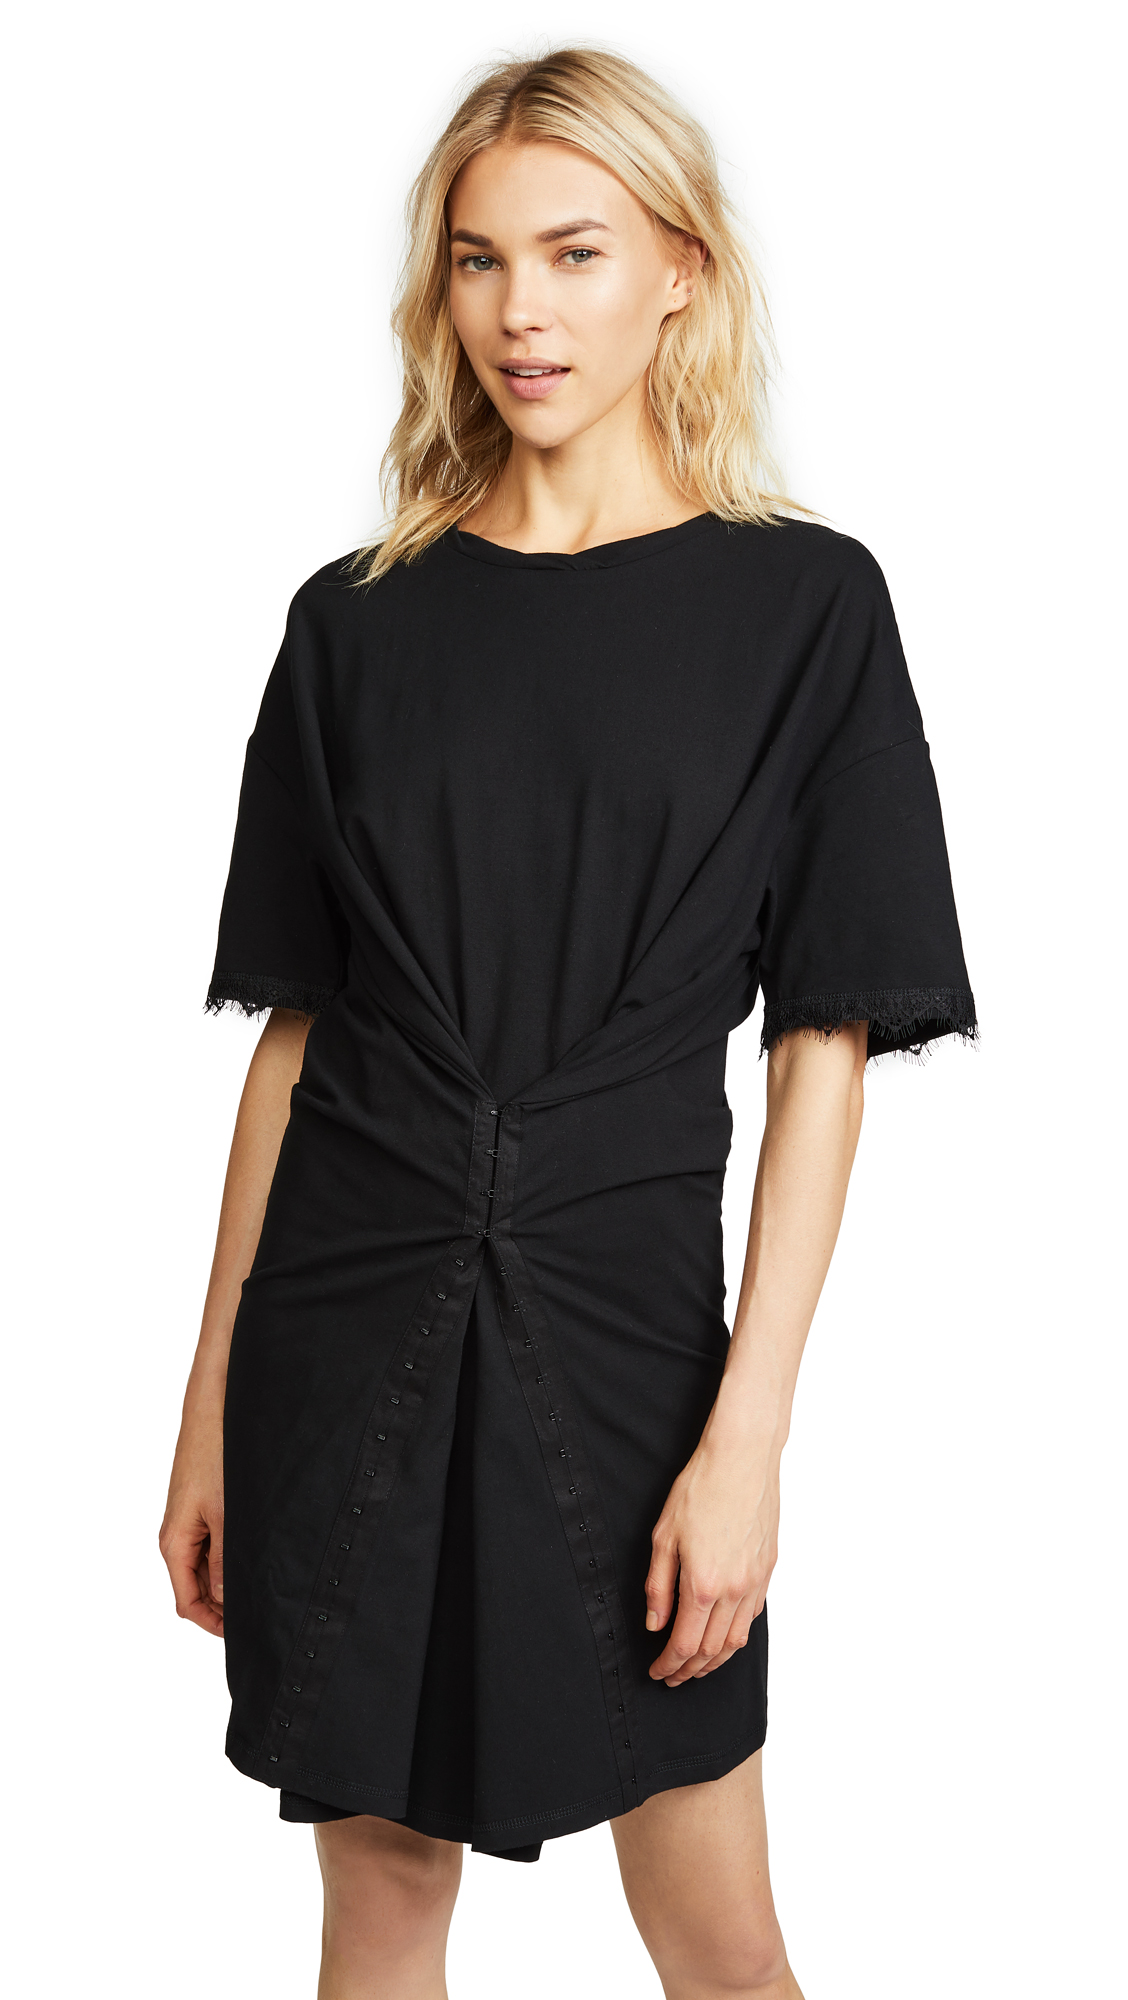 Opening Ceremony Hook & Eye T-Shirt Dress In Black